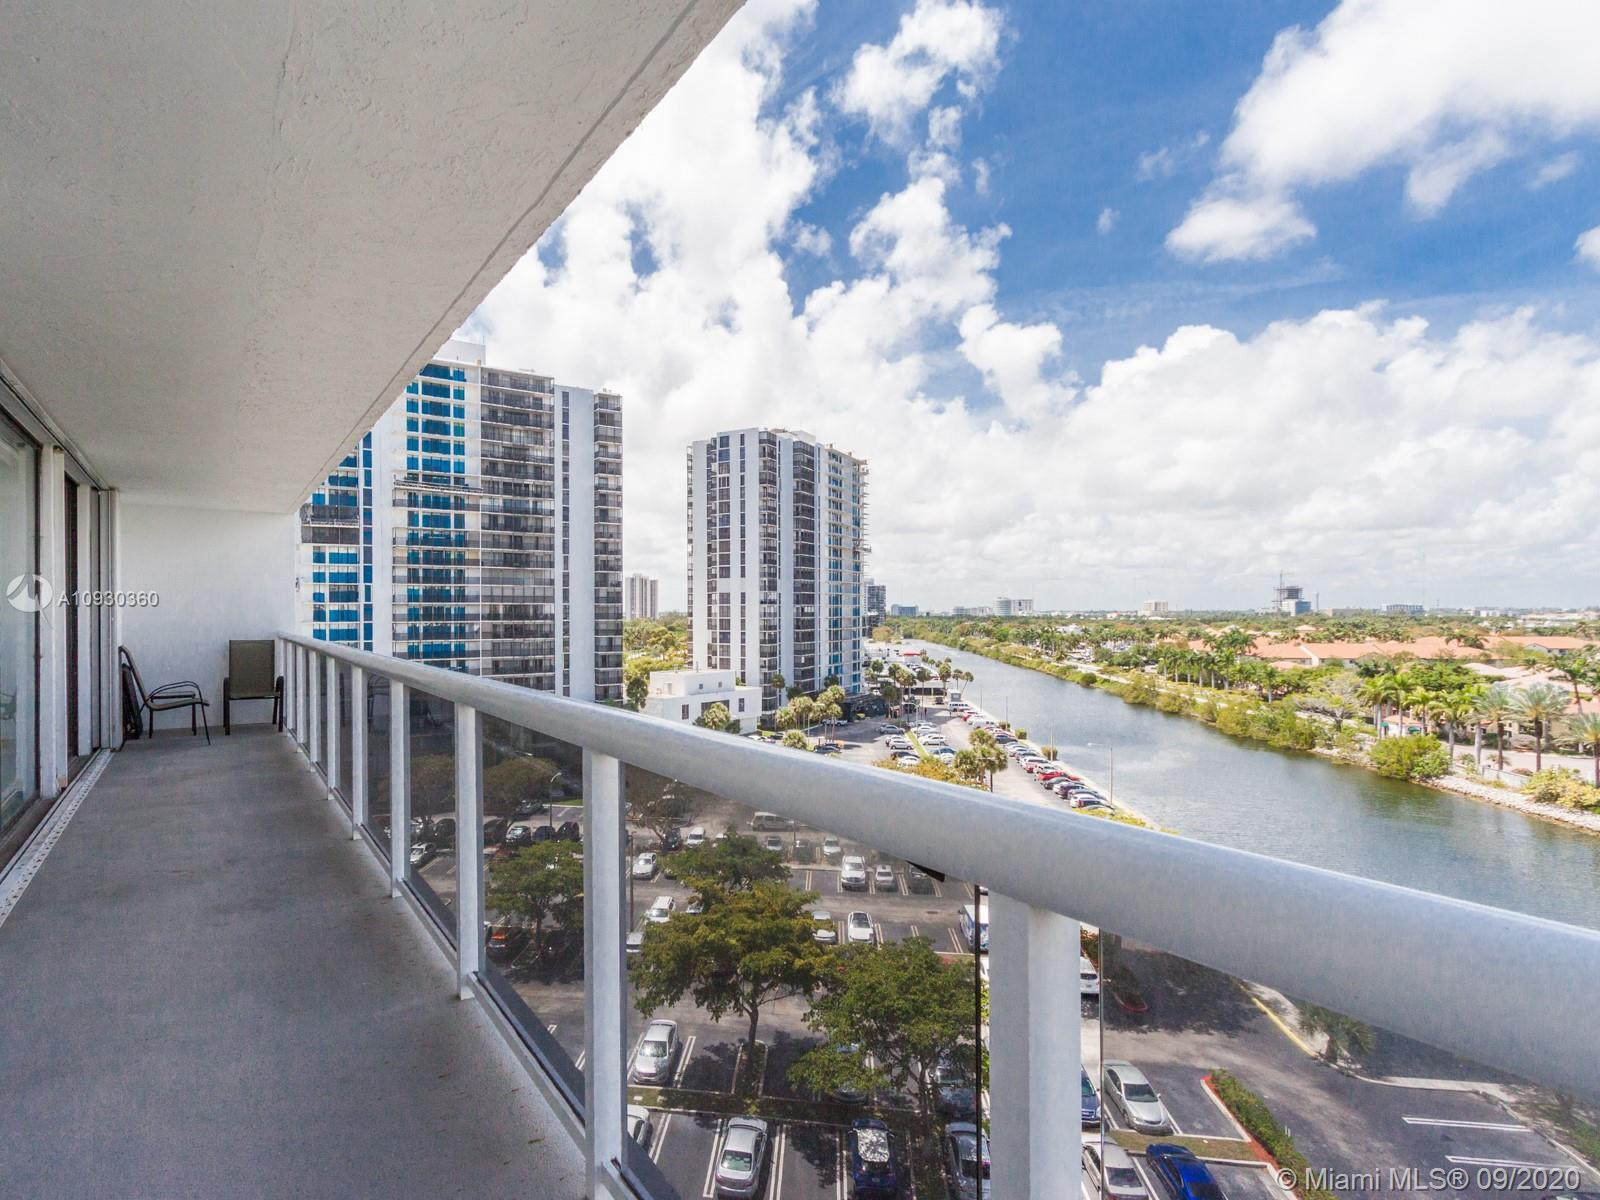 Aventura. Bright unit with beautiful views from this 2 bedroom, 2 bath. Freshly painted unit, Renova